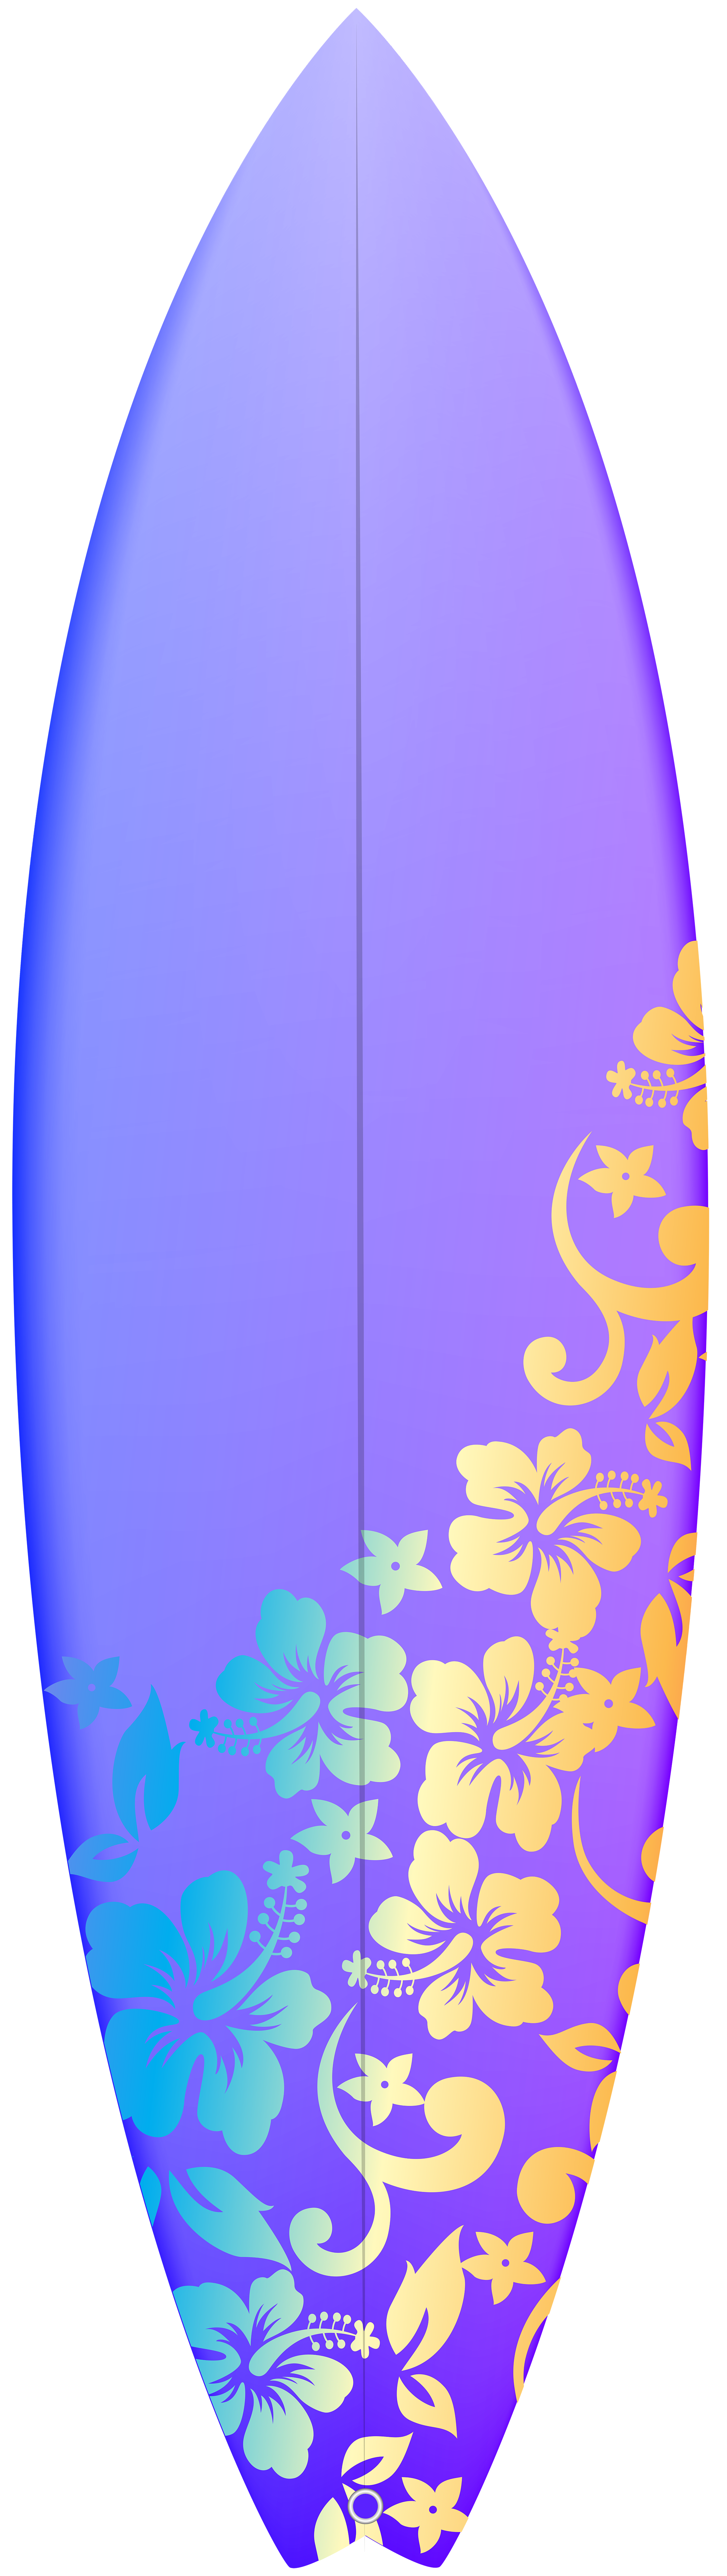 Surfboard with transparent background clipart clip art freeuse library Surfboard Transparent PNG Clip Art Image | Gallery Yopriceville ... clip art freeuse library